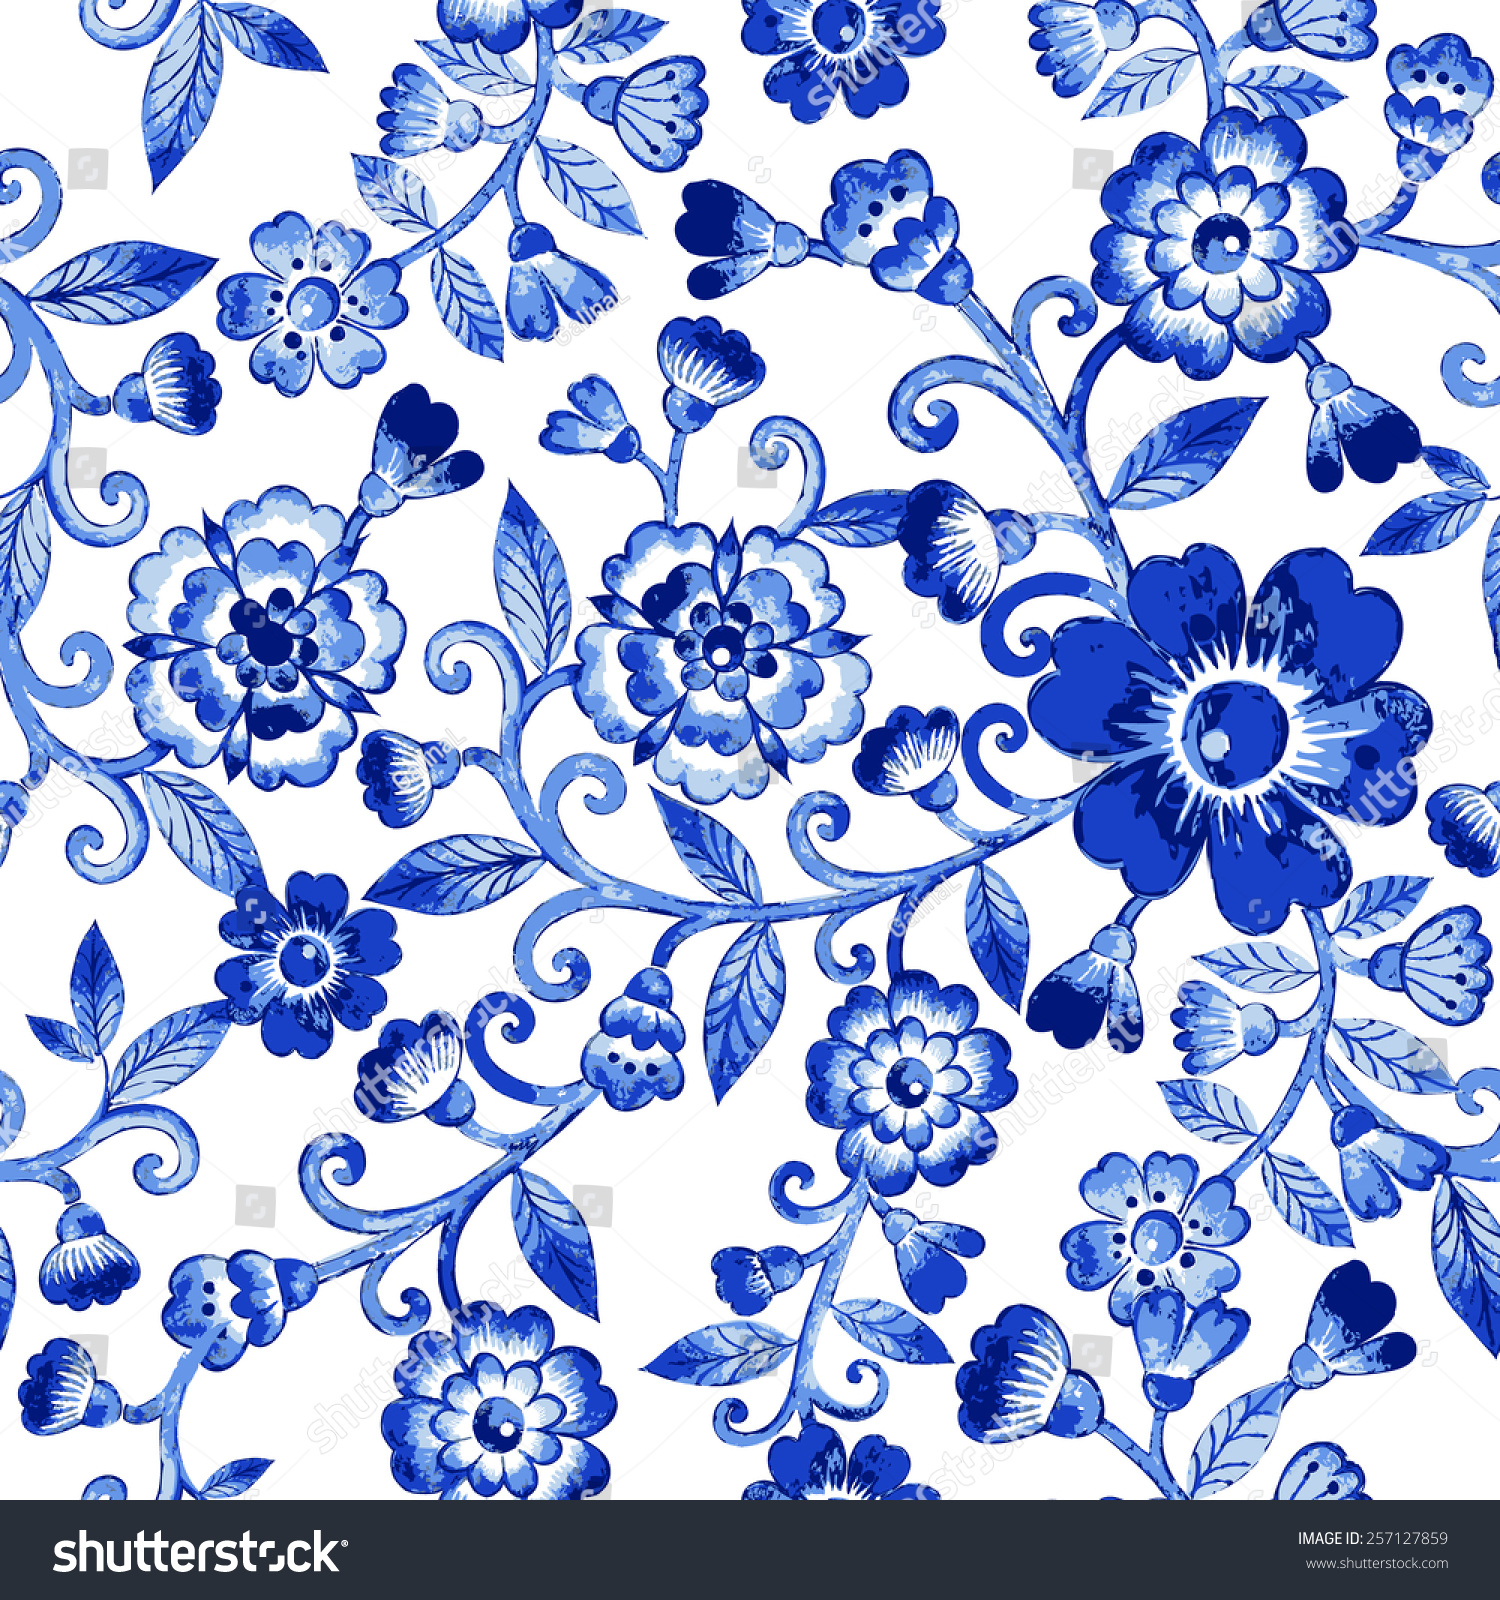 Vector Floral Watercolor Texture Pattern With Blue FlowersWatercolor PatternBlue Flowers PatternSeamless Can Be Used For Wallpaper